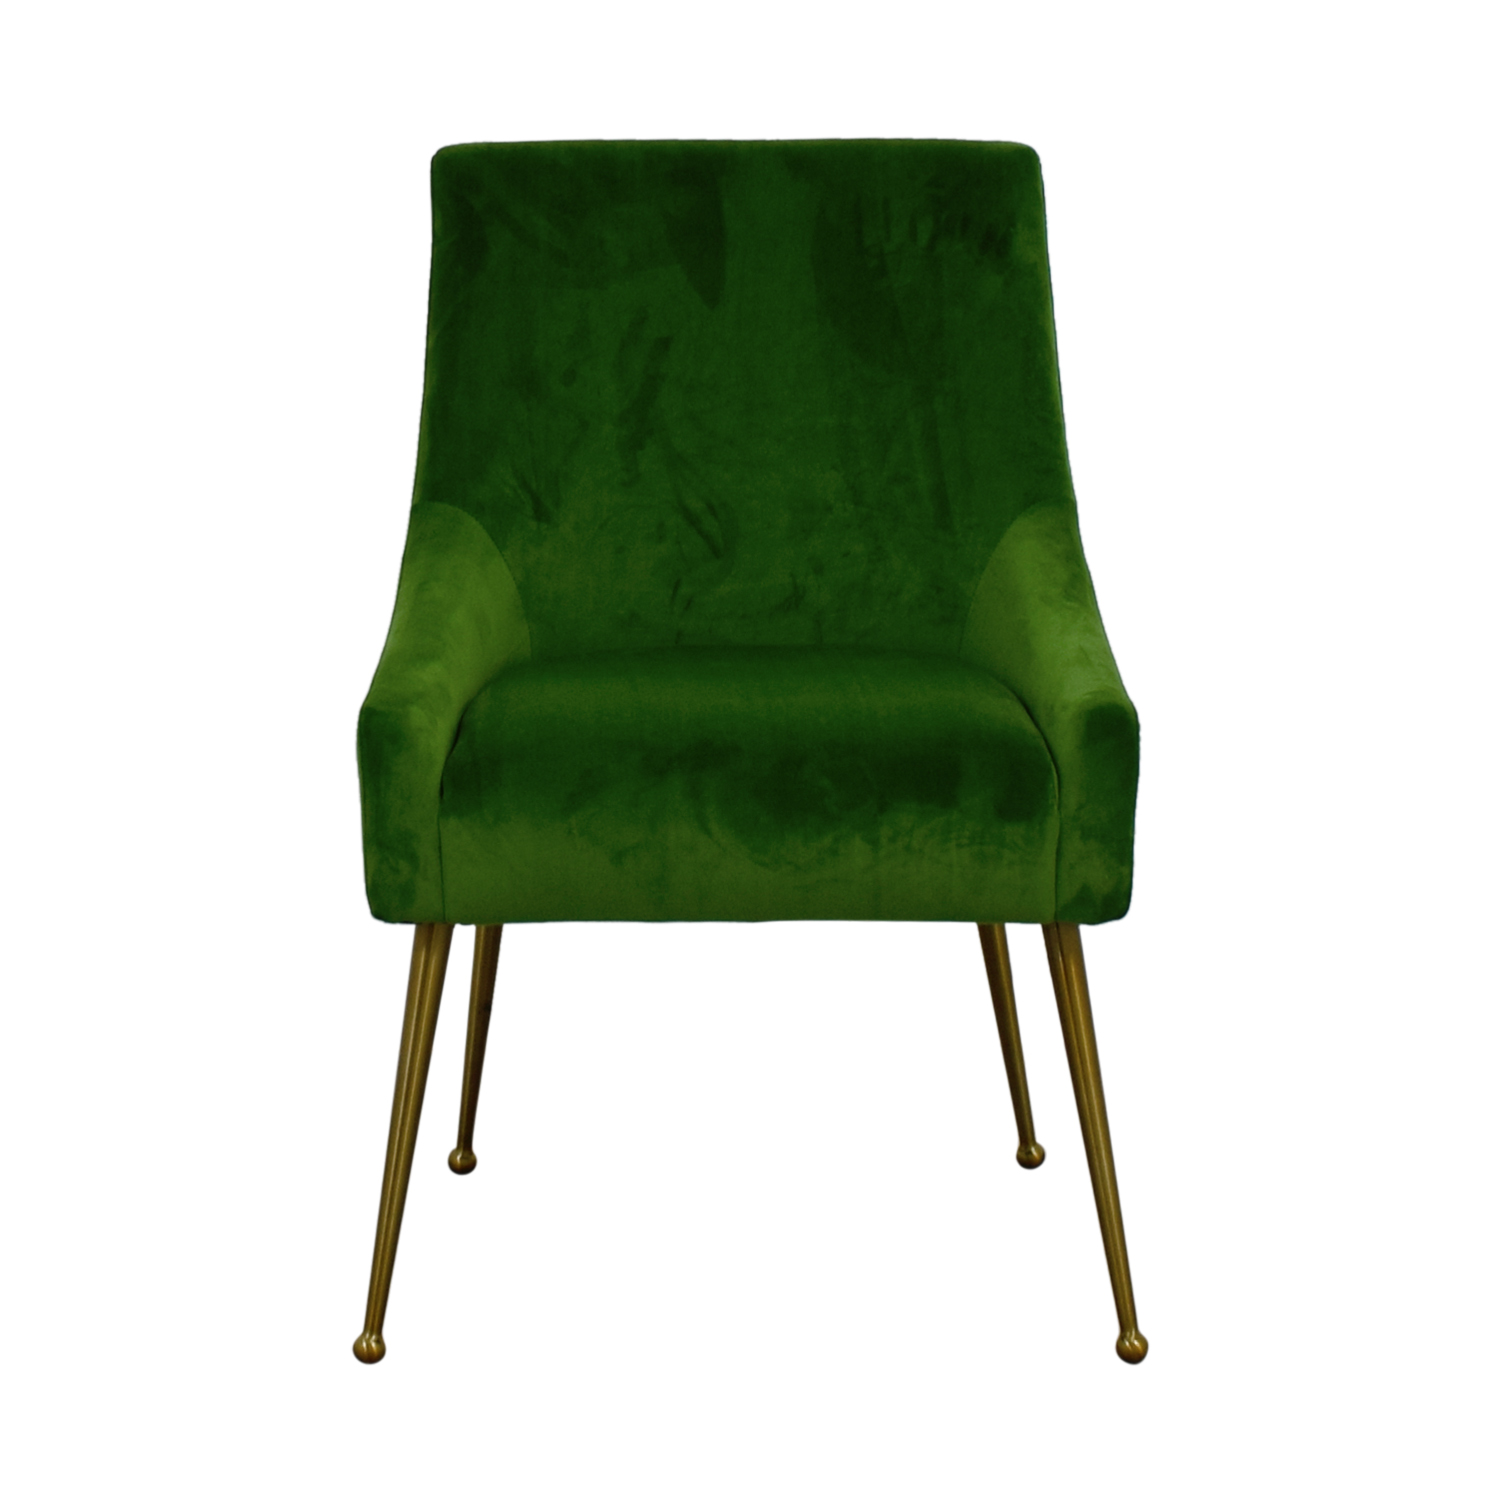 Tov Green Velvet Accent Chair / Chairs